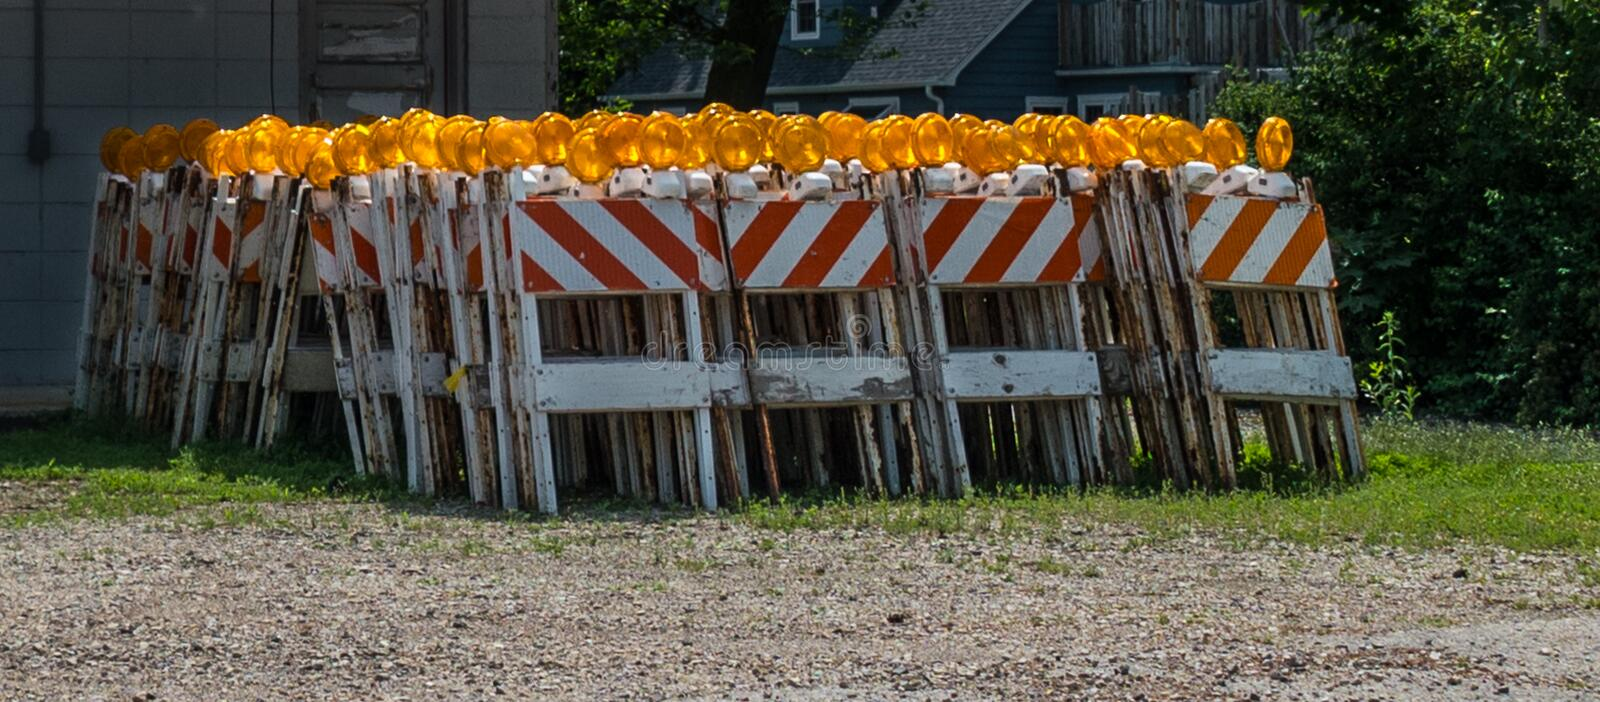 Construction barricades old and obsolete stock image